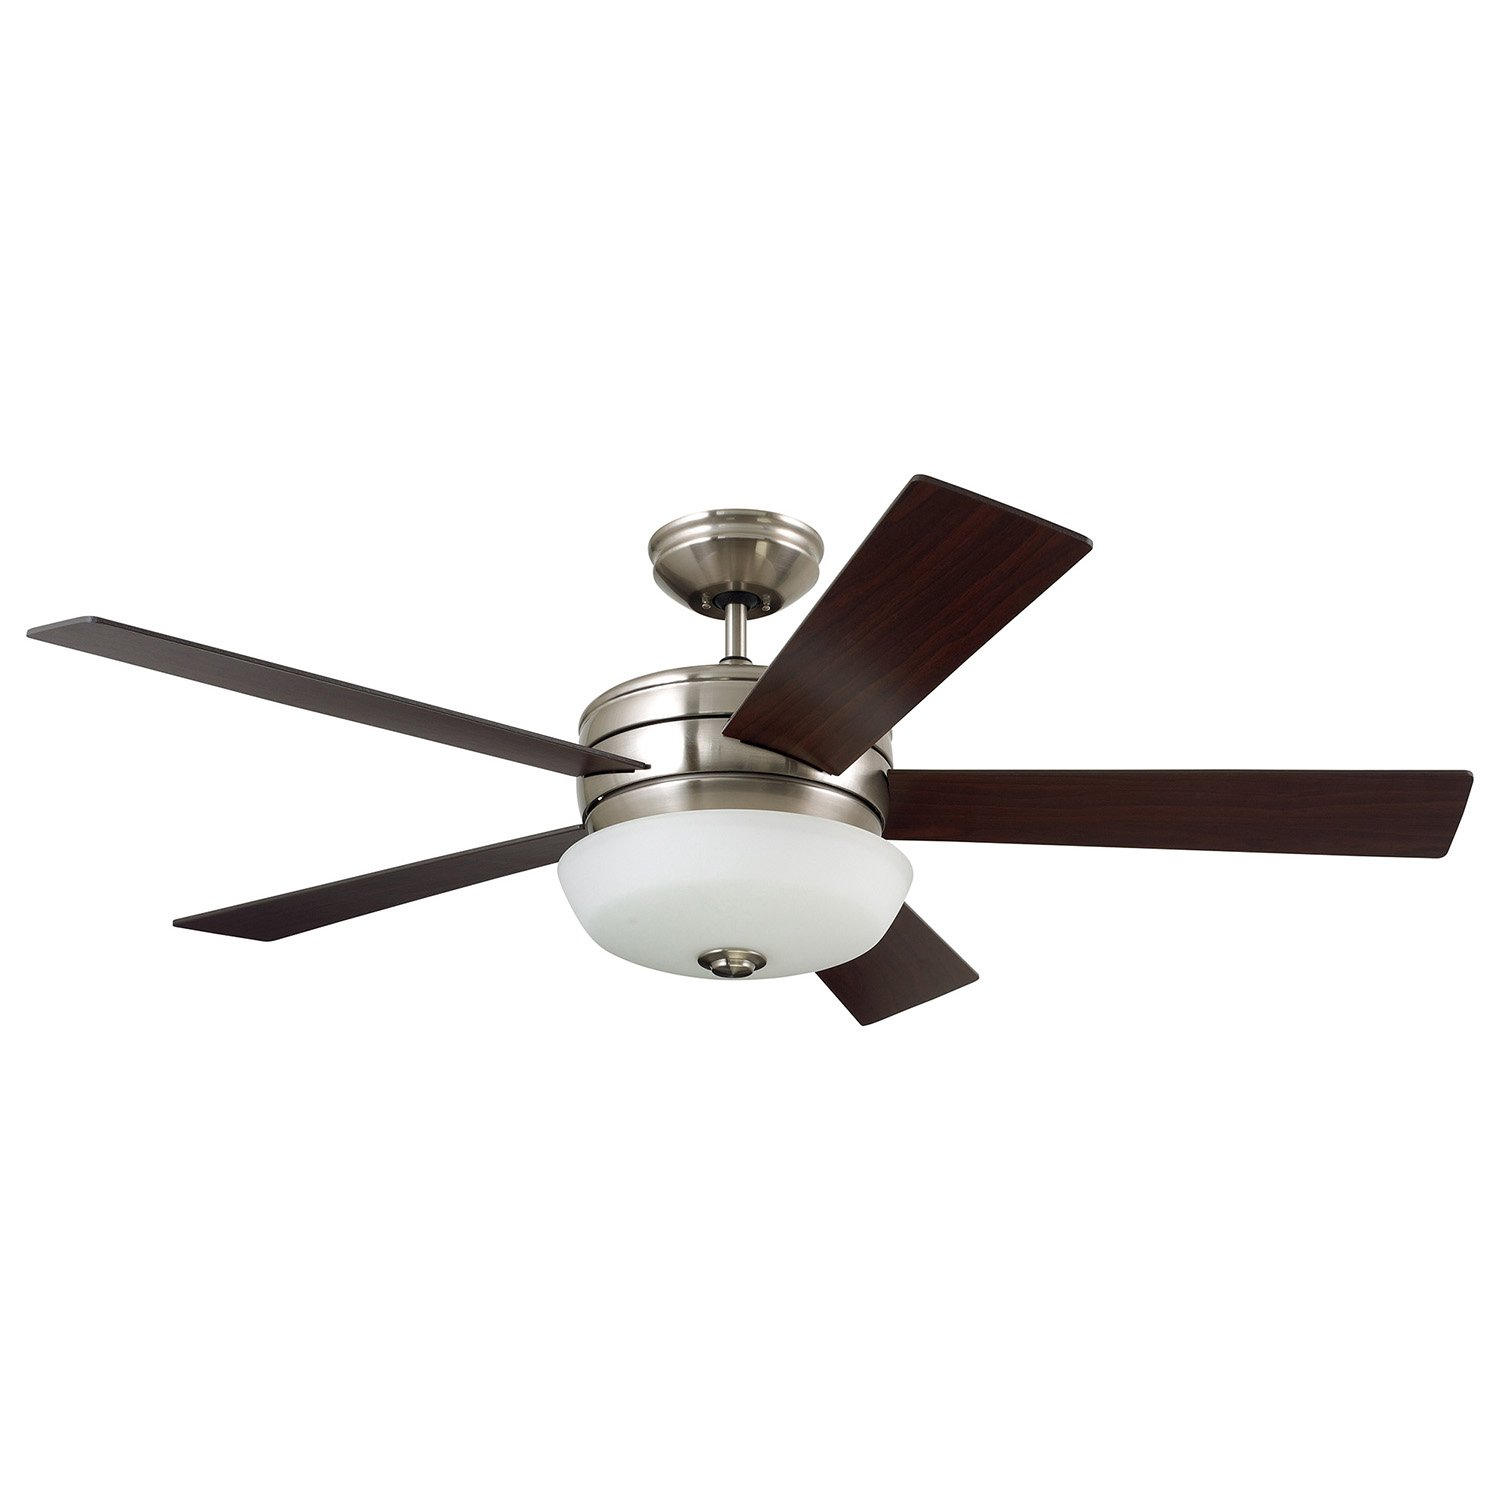 Emerson CF411BS Cronley 54'' Blade Span with integrated light fixture,Includes 4.5'' Downrod and Remote Control with Receiver,Brushed Steel